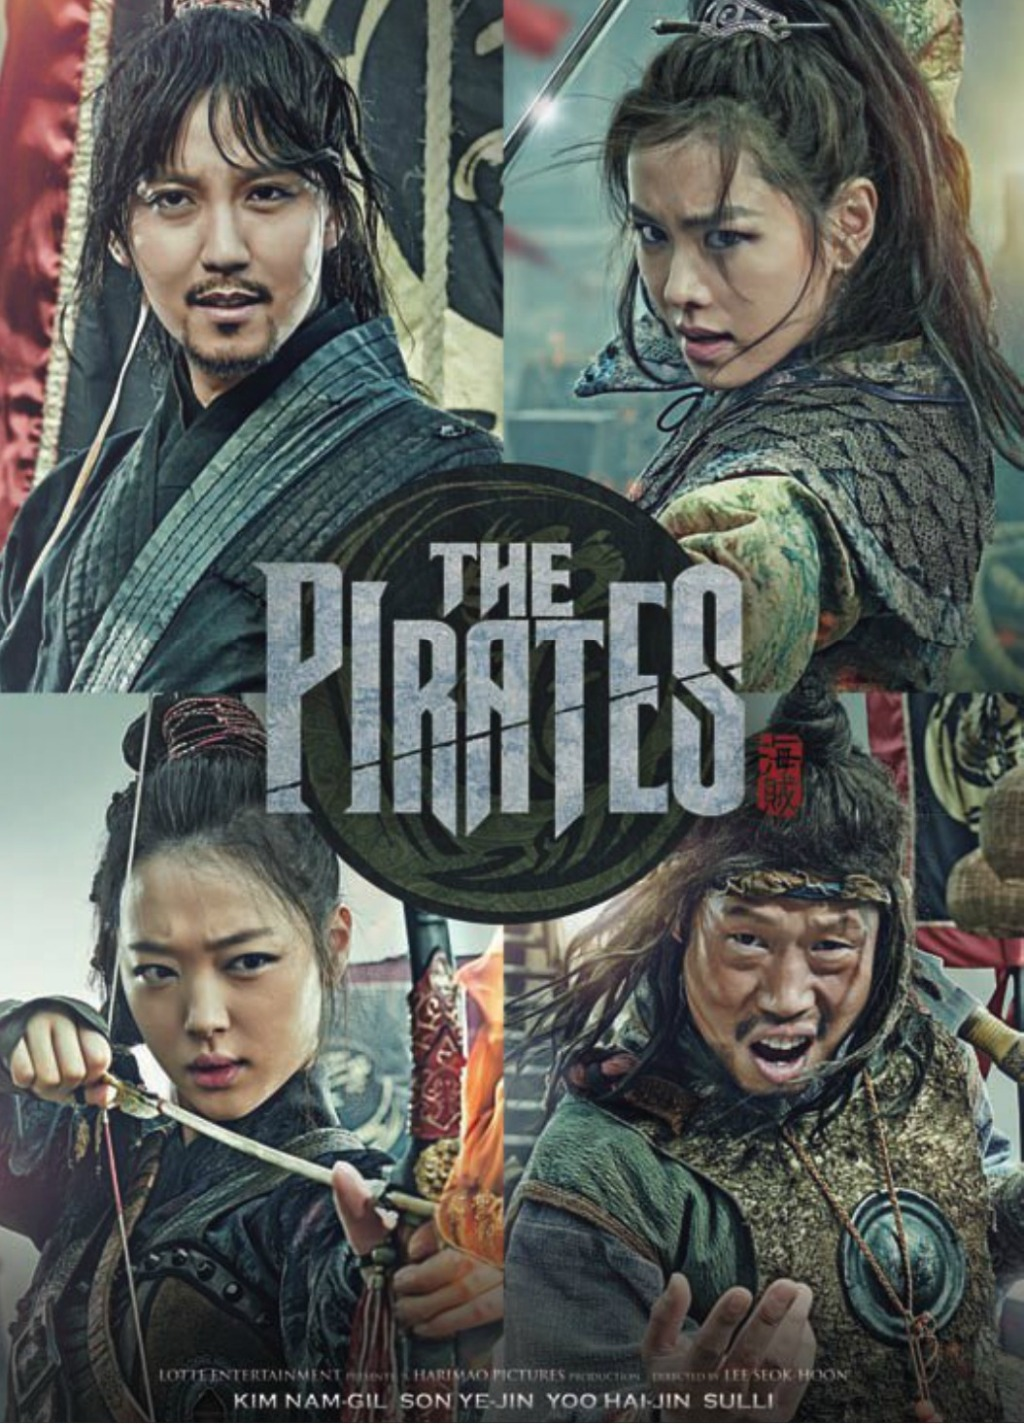 Film Trailers World 2014 Custom E Money Flazz Dan Brizzi Card Design Batman 1 The Pirates Hangul Rr Haejeok Badaro Gan Sanjeok Lit Bandits Going To Sea Is A South Korean Period